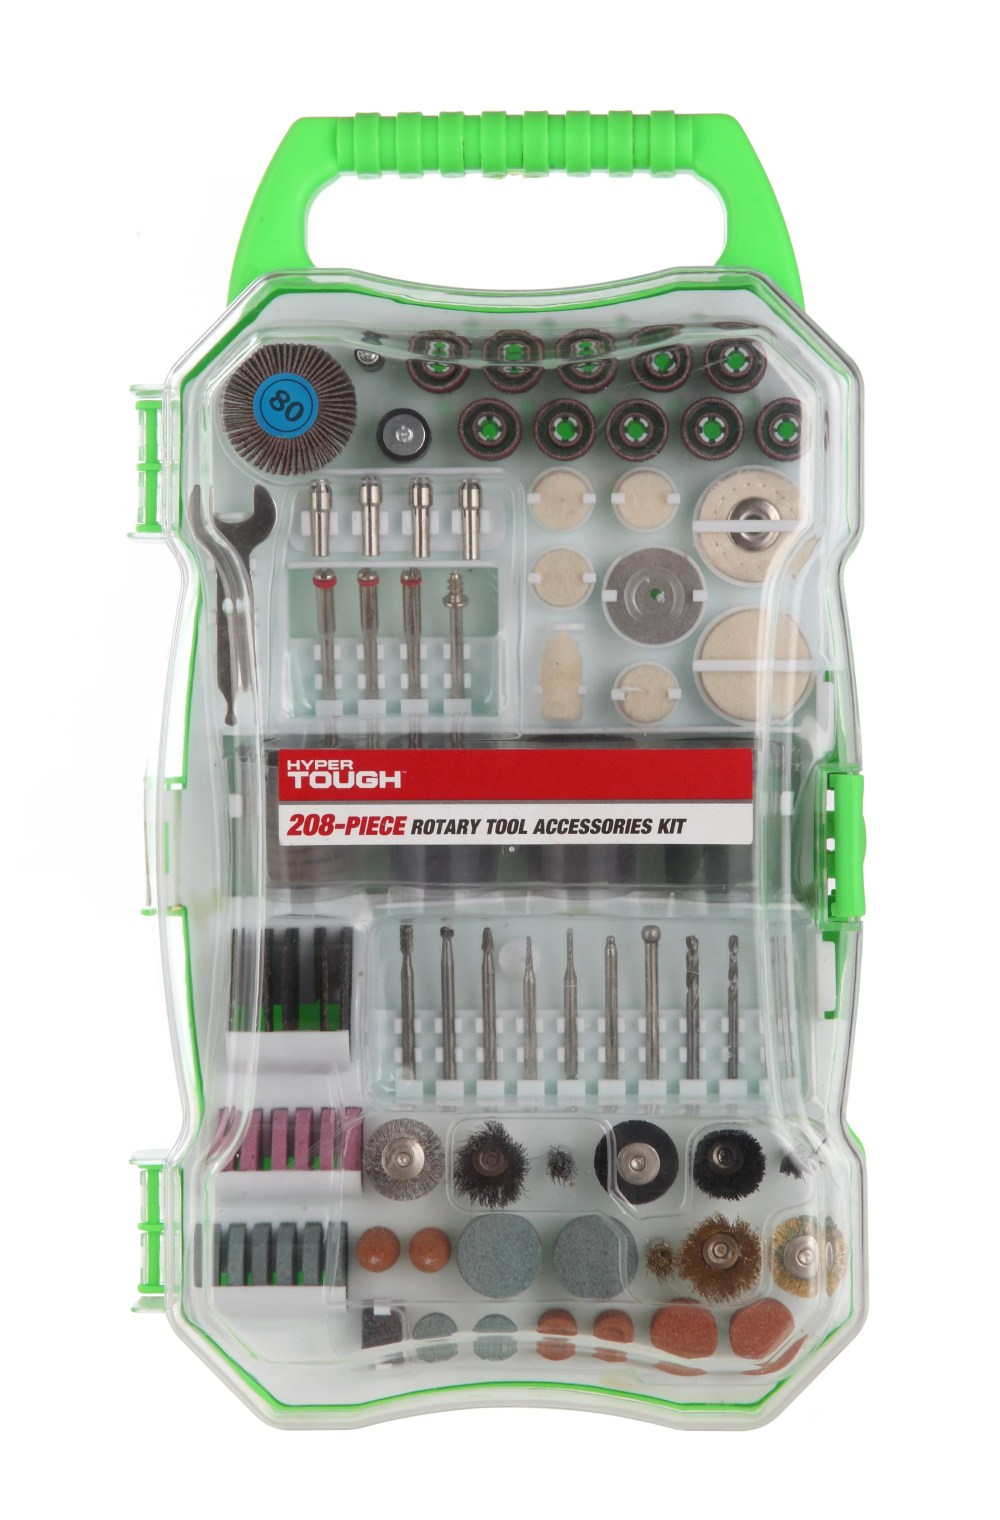 medium resolution of hyper tough 208 piece rotary tool accessory kit with storage case walmart com